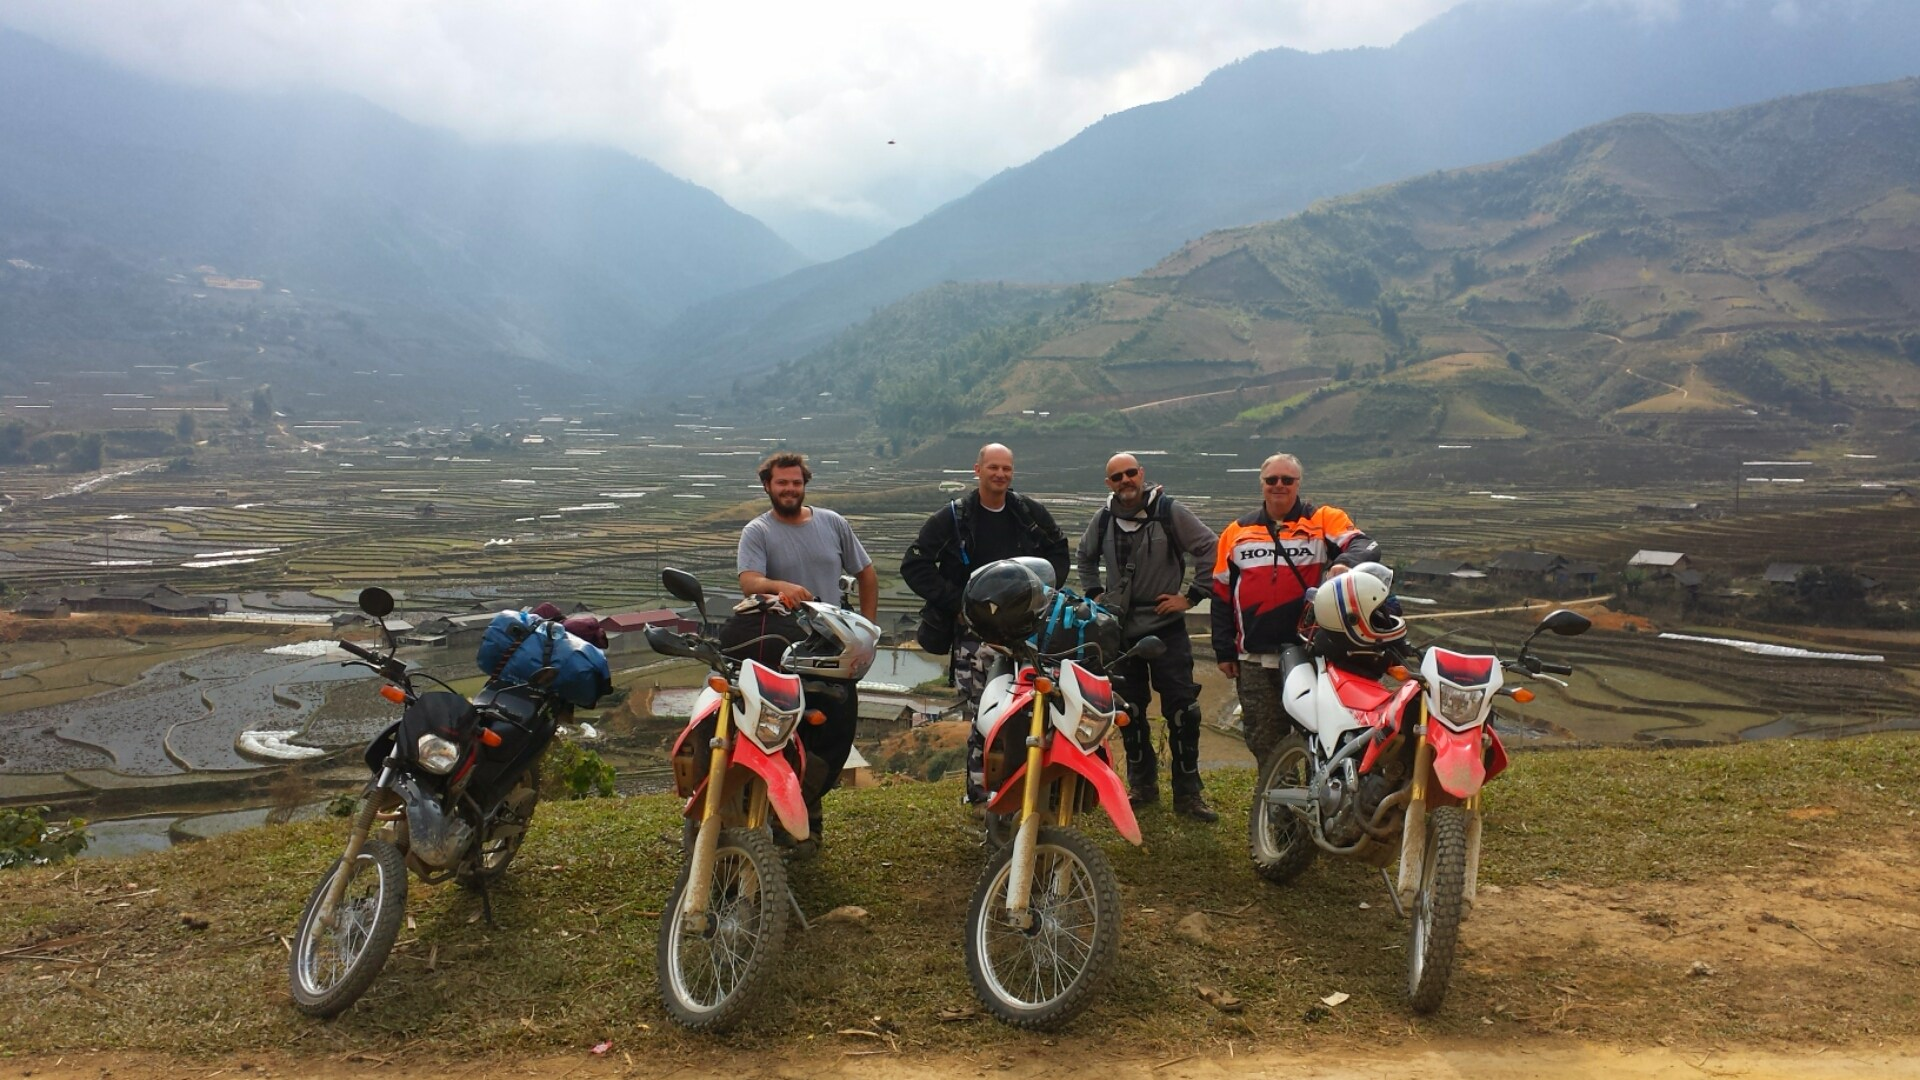 Useful advices for an off-road enduro dirt bike travel in Vietnam